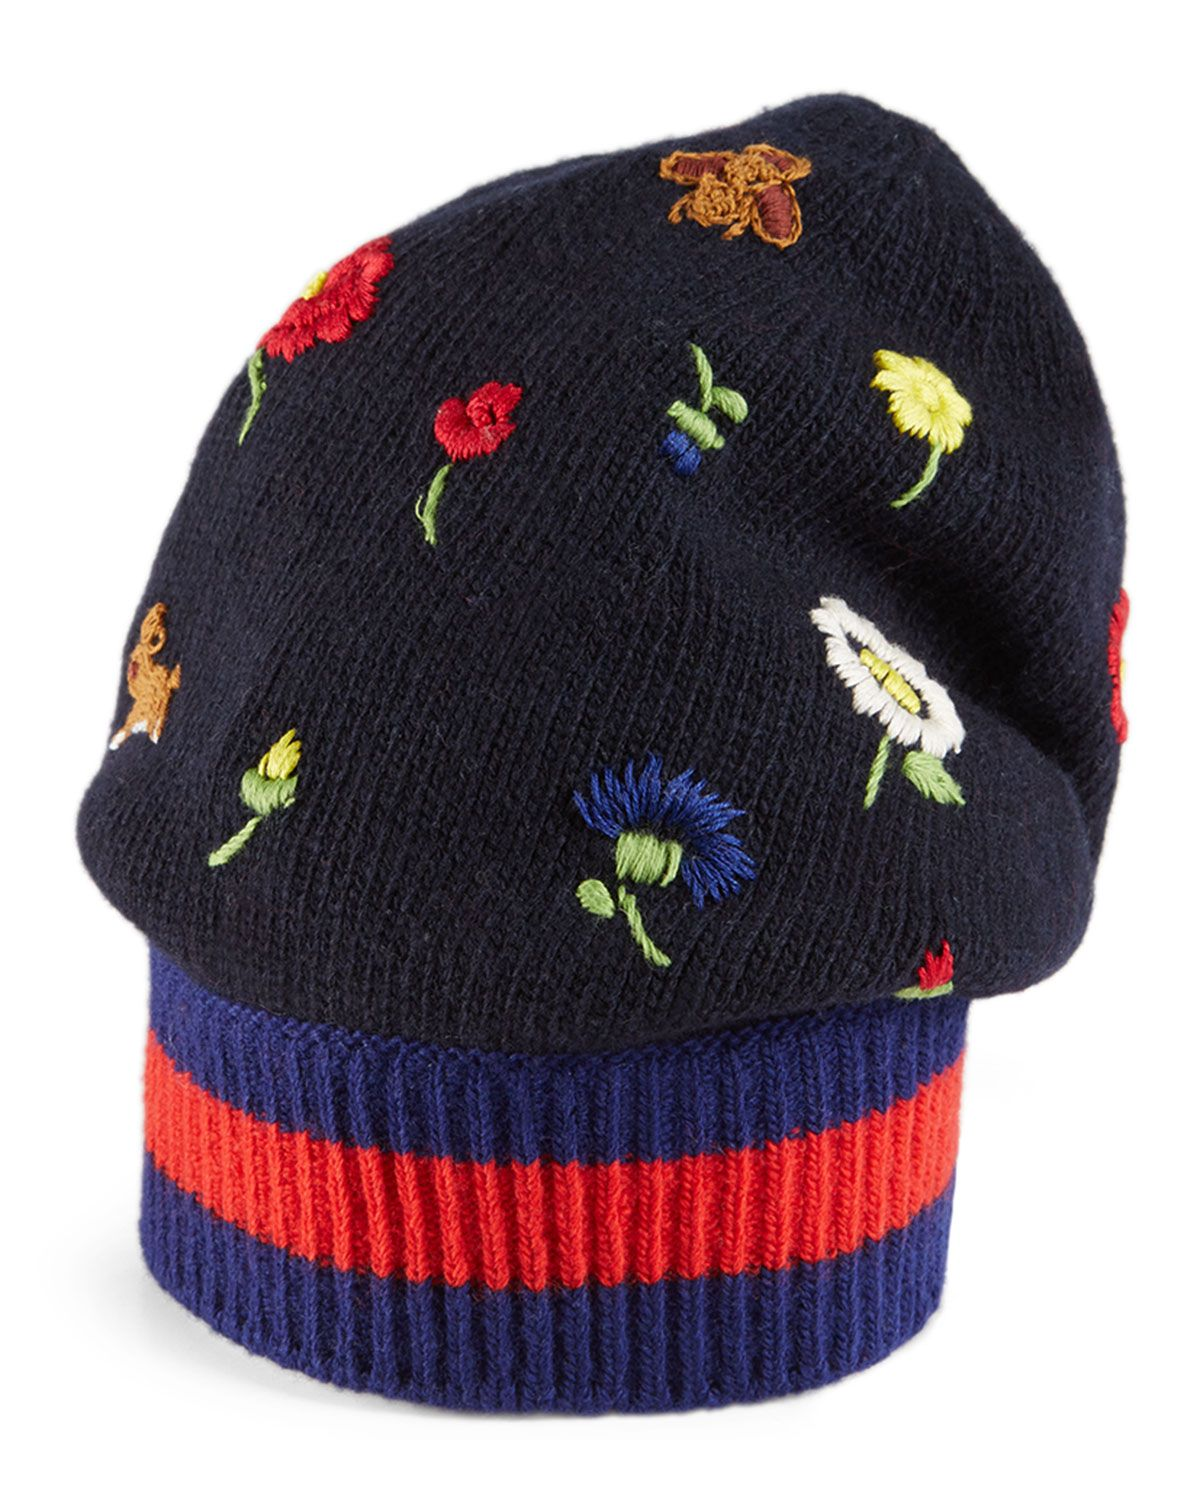 35f5e7c2c4c Gucci Flower   Bee-Embroidered Knit Hat